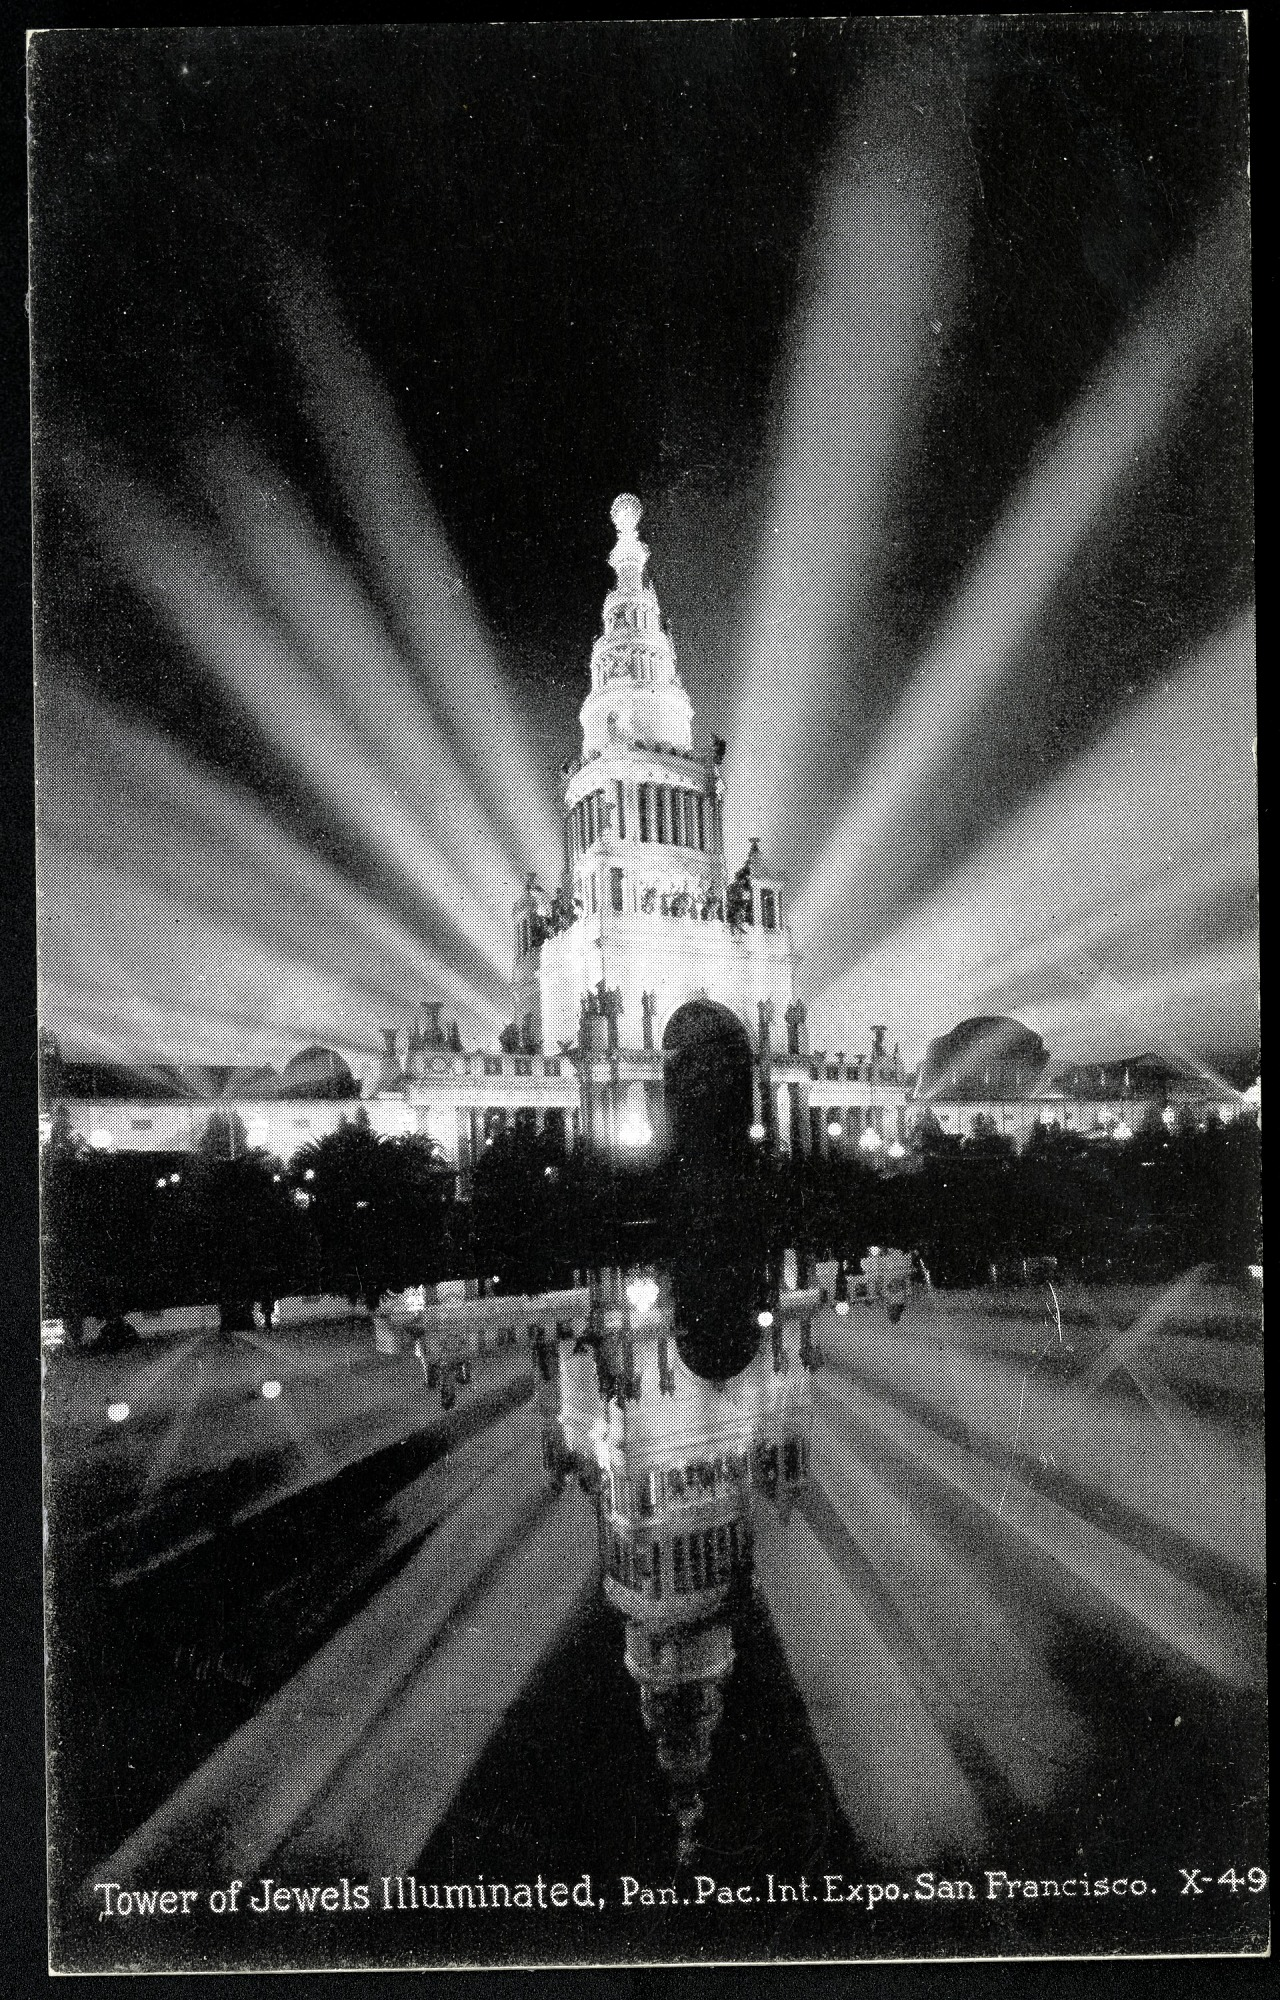 Tower of Jewels Postcard from the Panama-Pacific Exposition